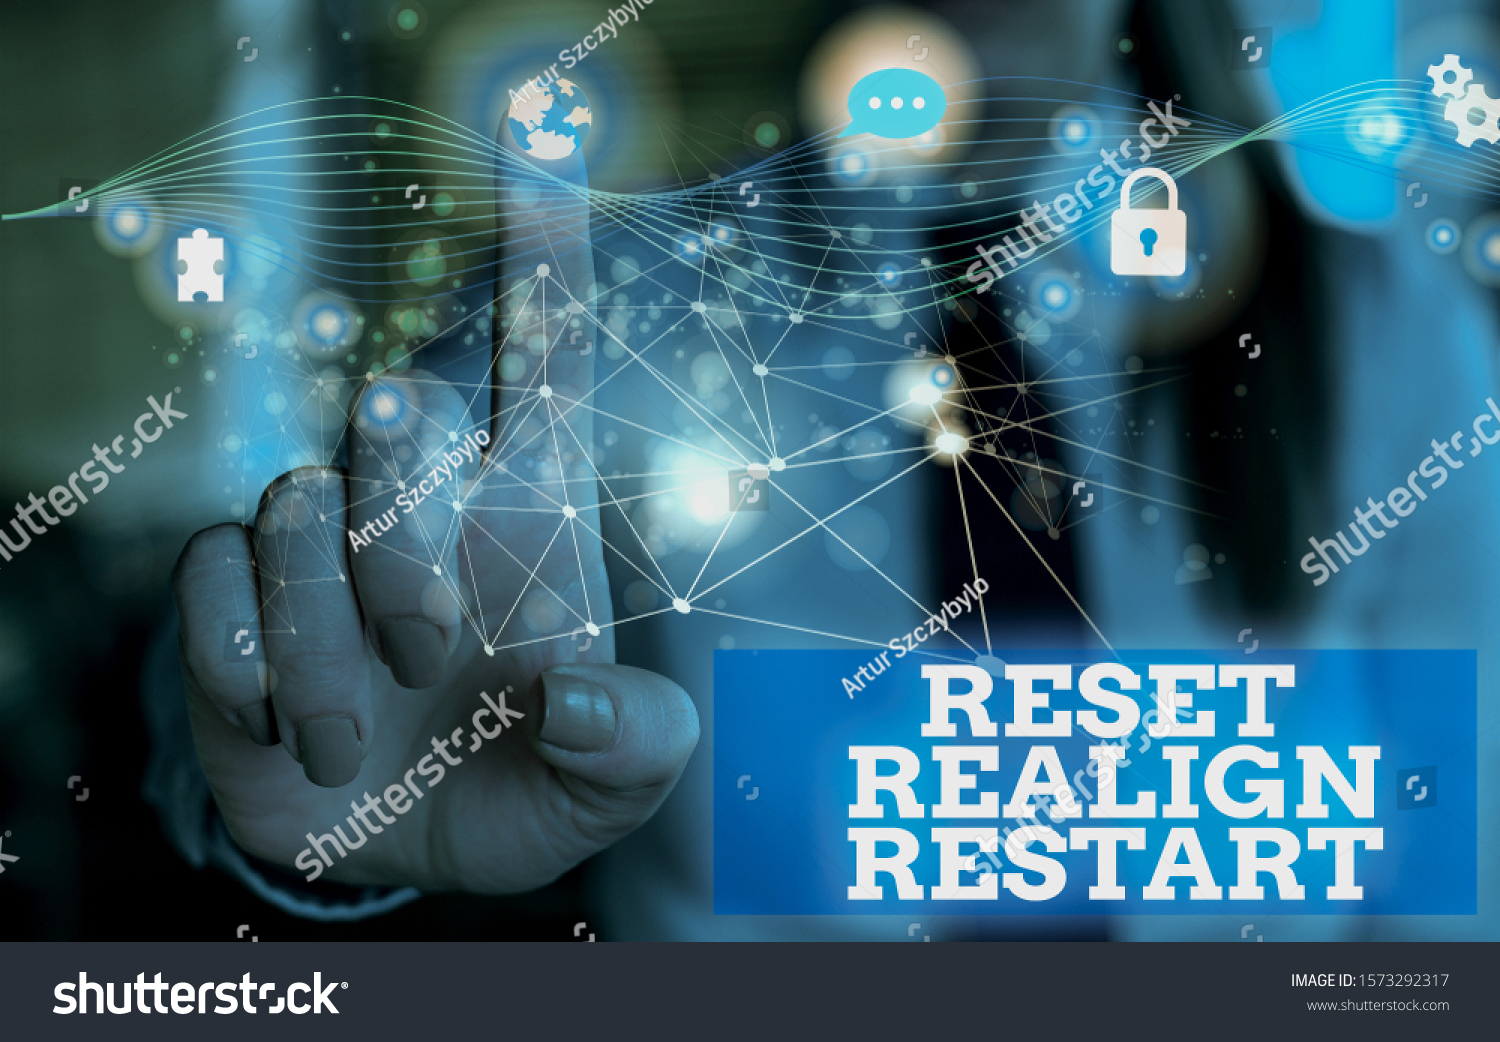 Handwriting text Reset Realign Restart. Concept meaning Life audit will help you put things in perspectives Picture photo system network scheme modern technology smart device. #1573292317